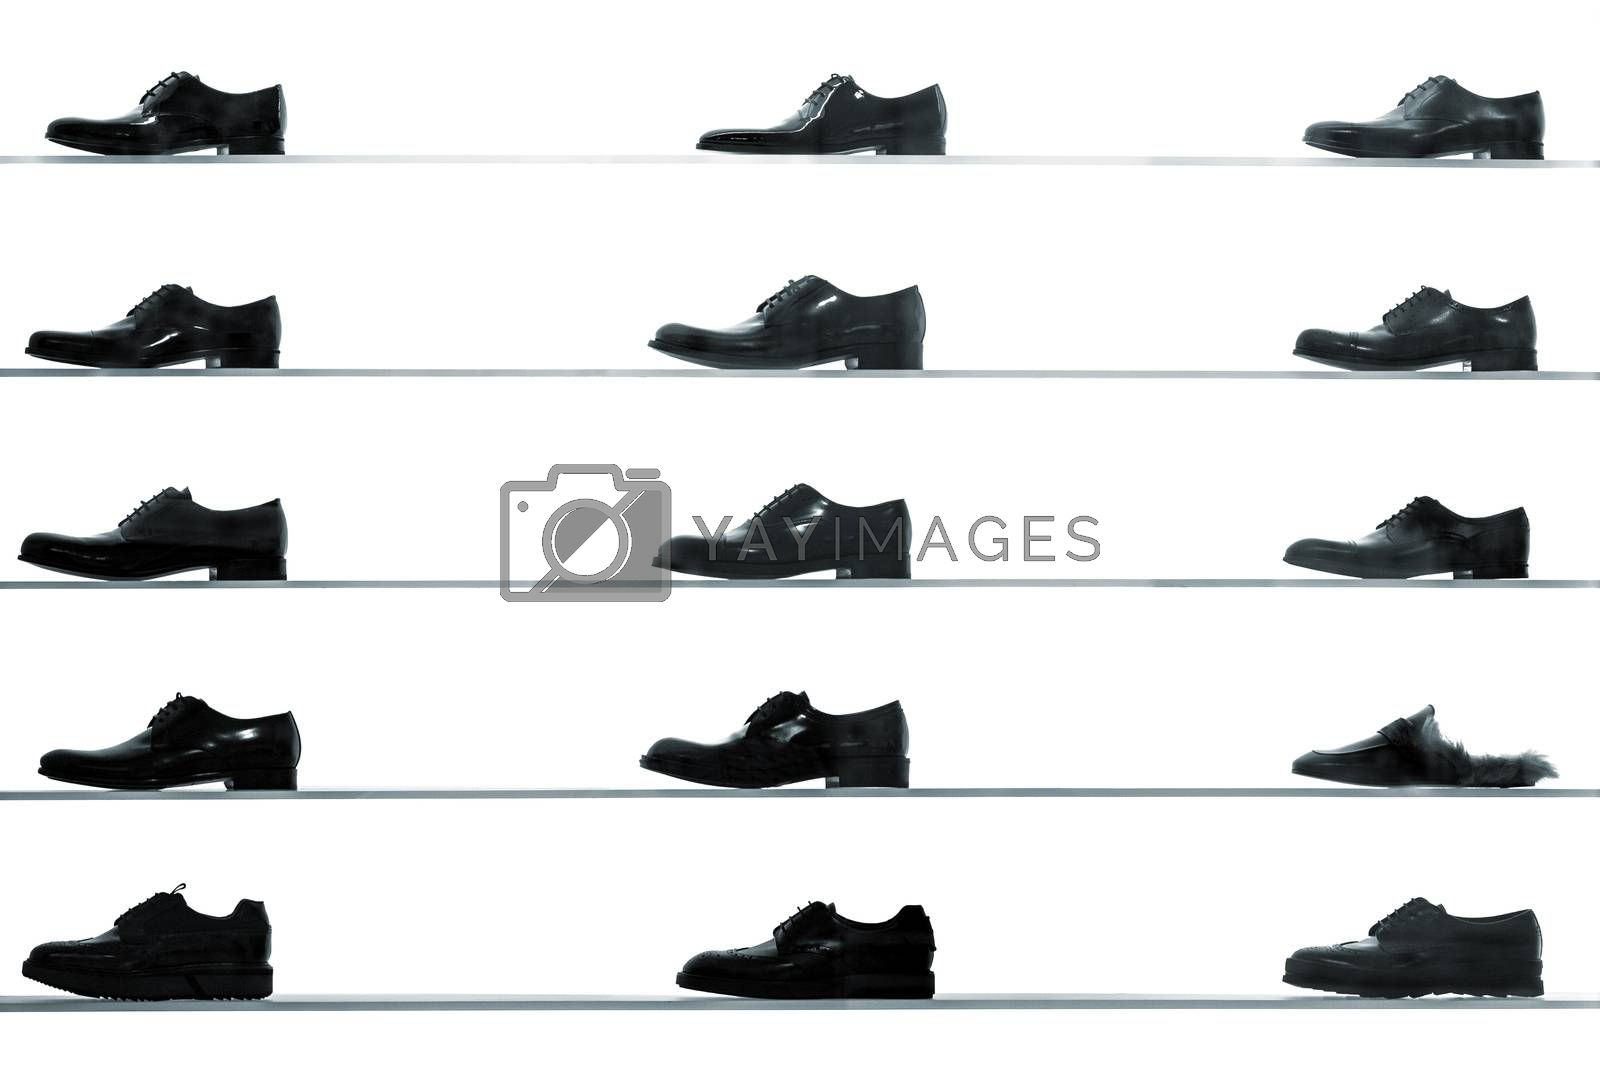 Men classic shoes displayed on shop shelves against back lit white background. High contrast black and white abstract looking picture